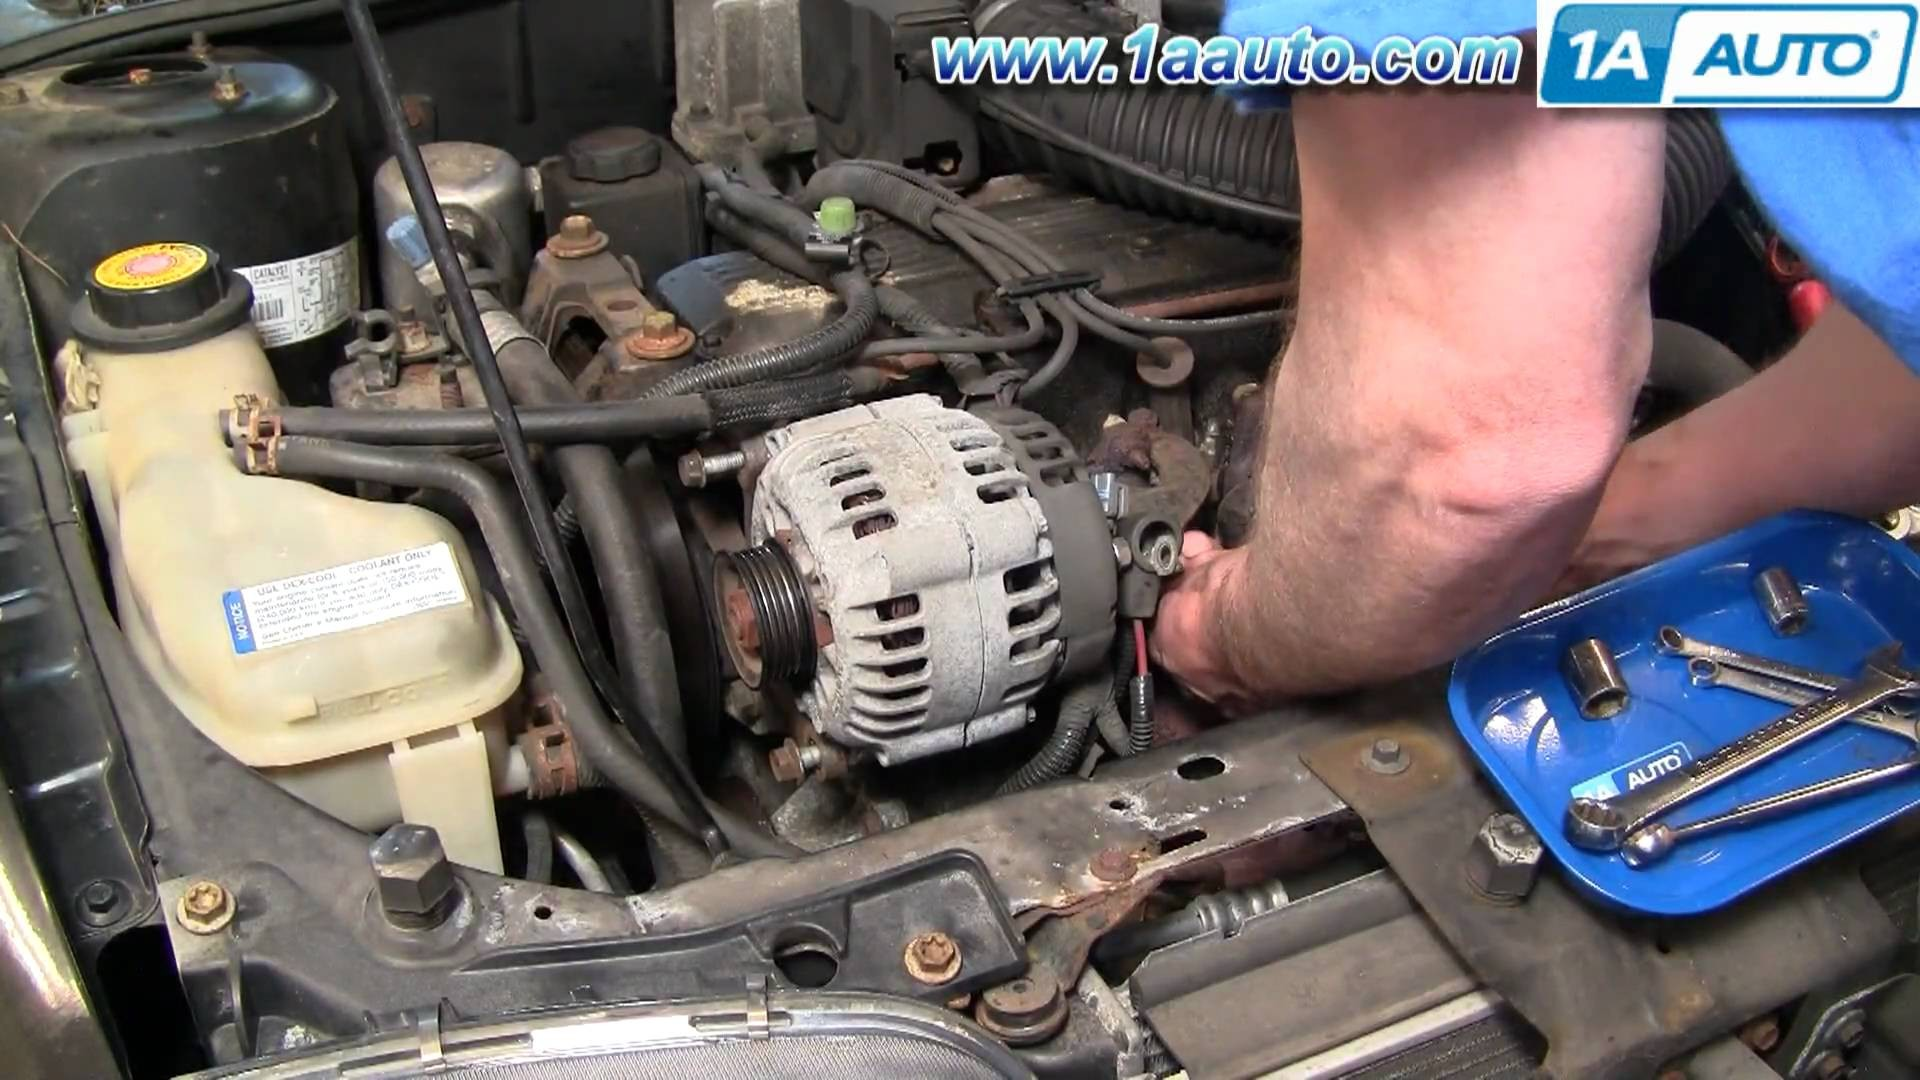 1998 Chevy Cavalier Engine Diagram How to Install Replace Alternator  Cavalier Sunfire 2 2l 95 05